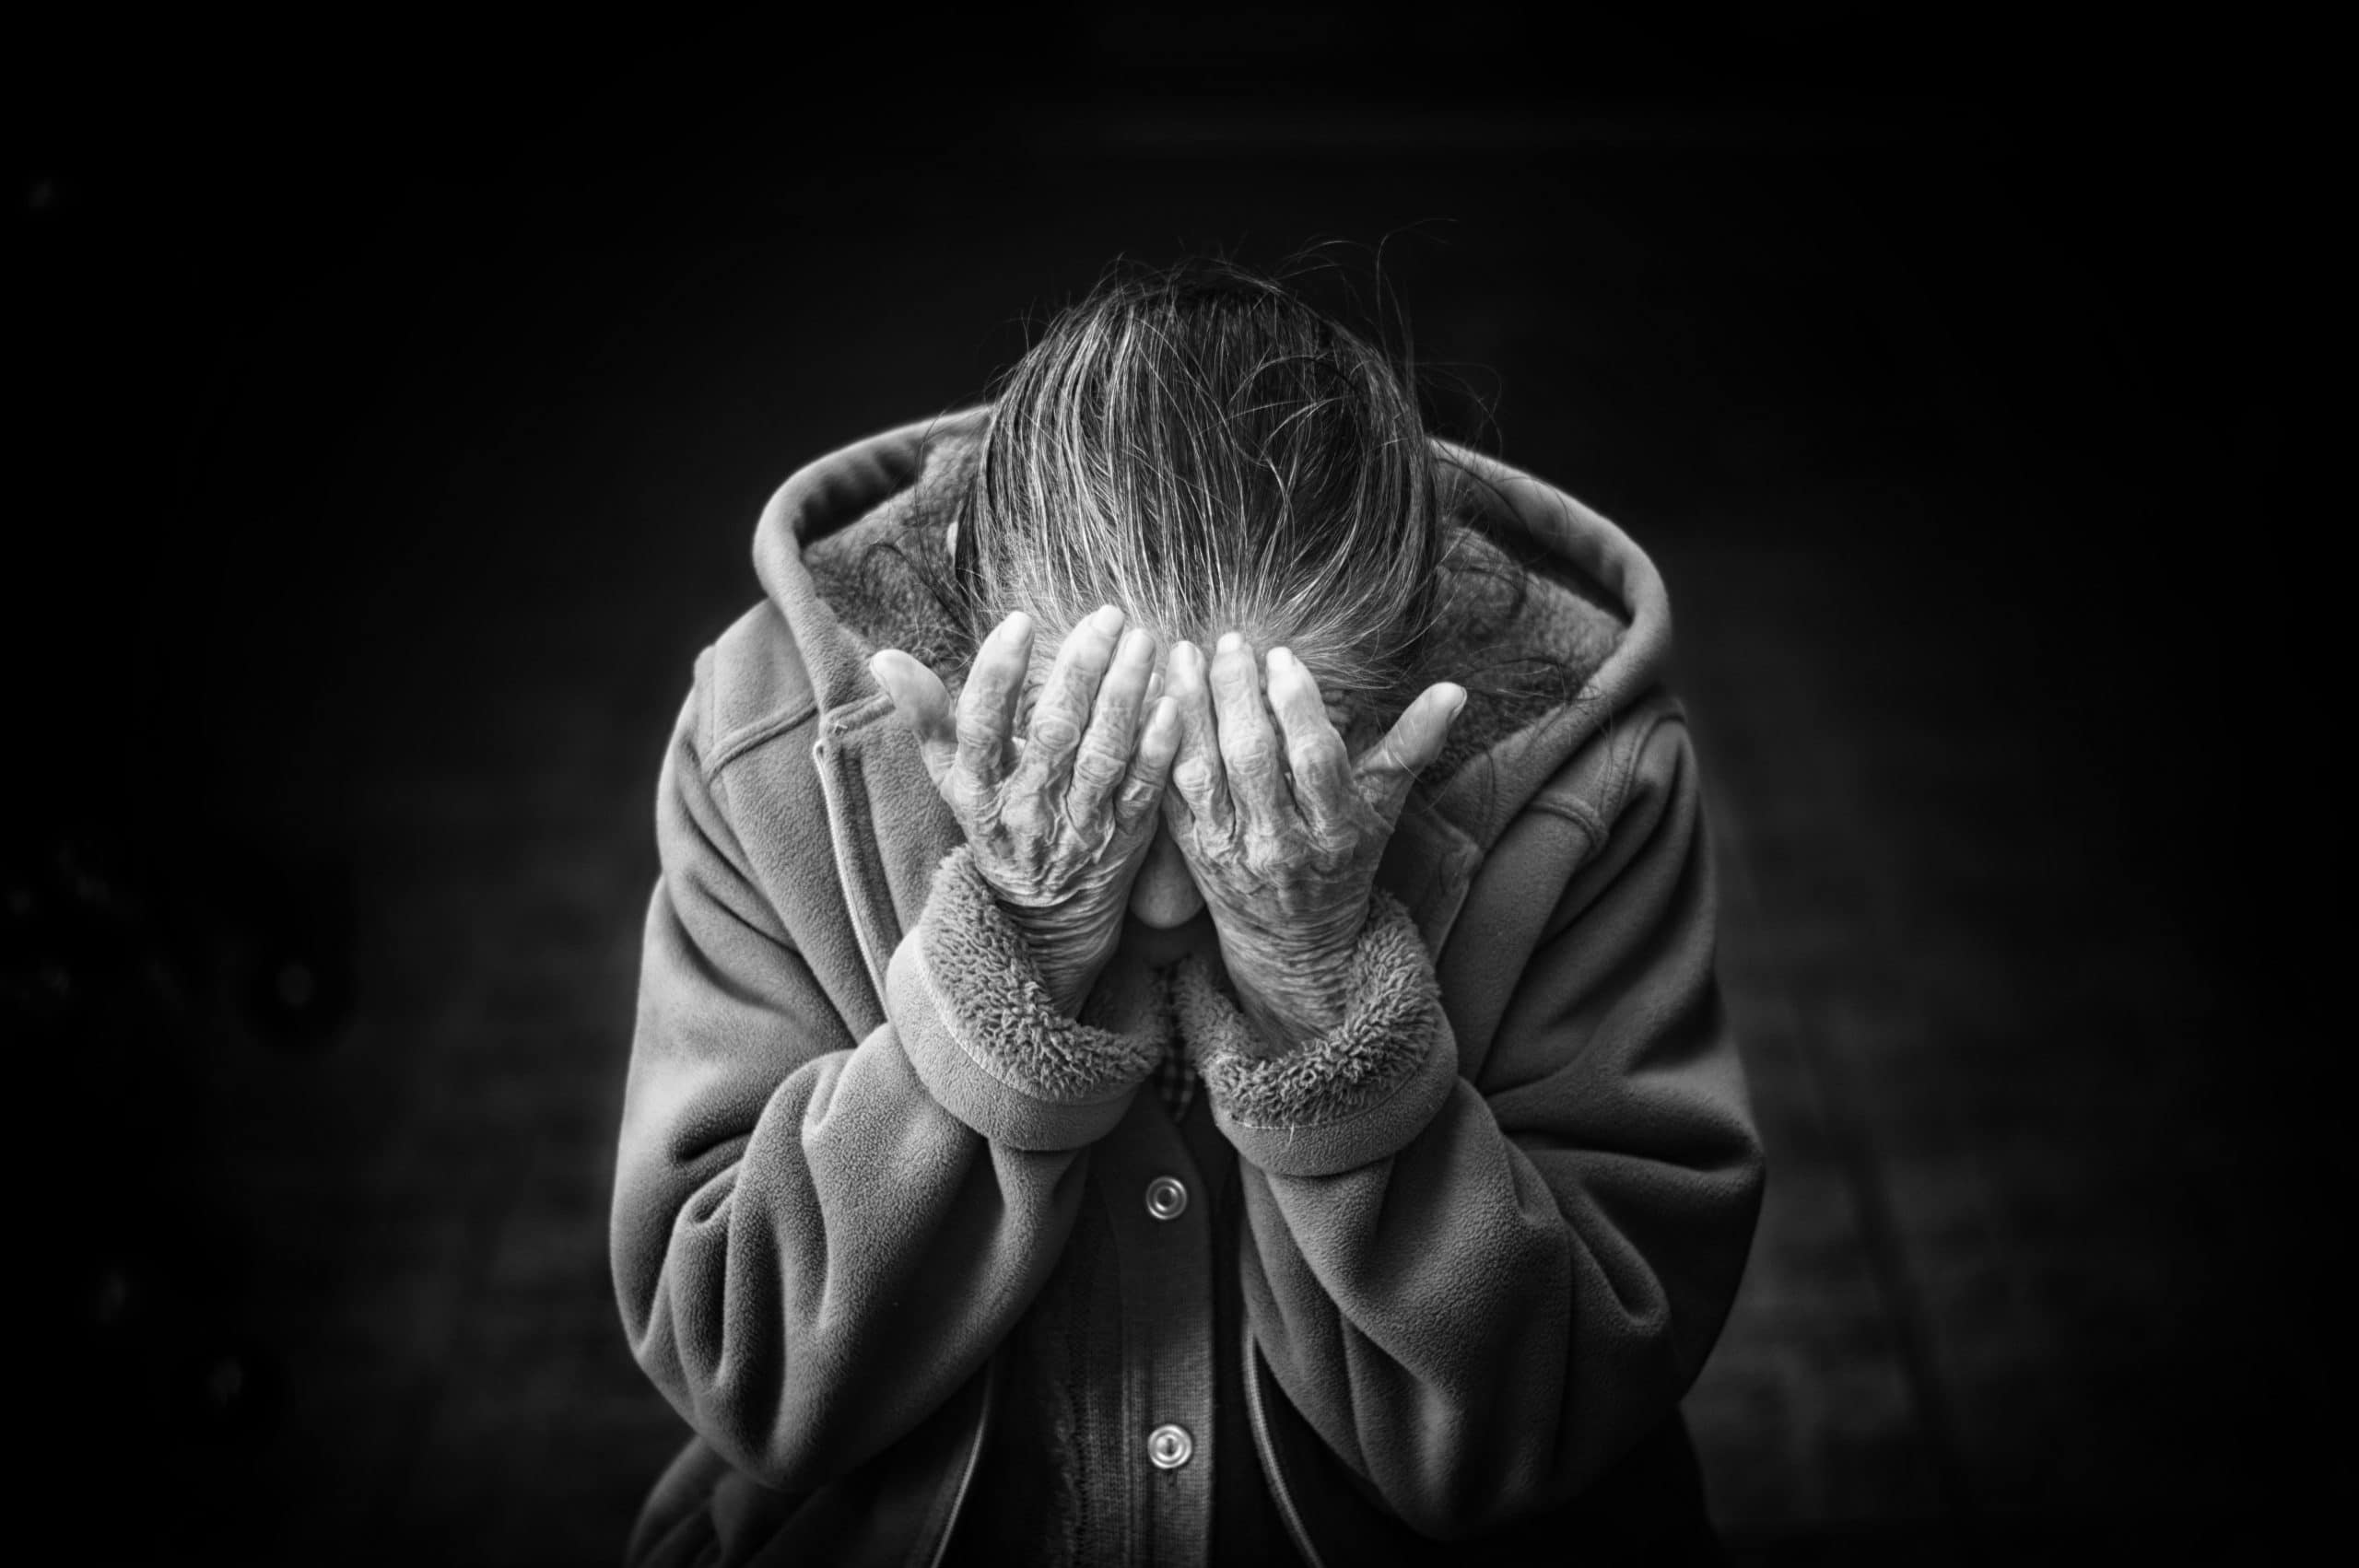 black and white picture of Elderly woman with hands on her face, upset